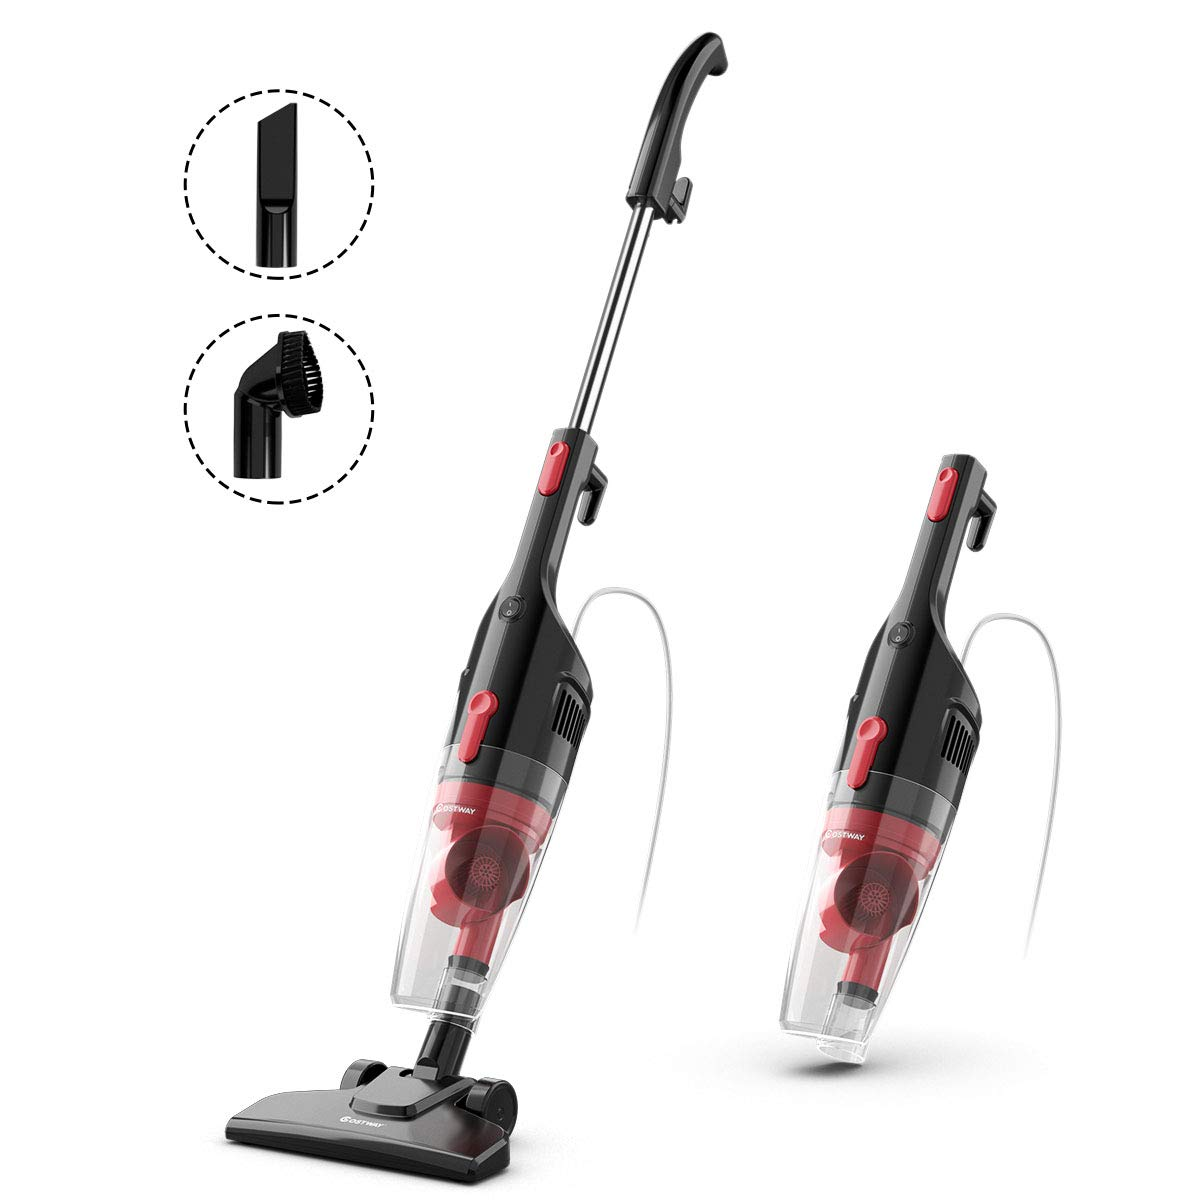 COSTWAY 6-in-1 Stick Vacuum Cleaner, 16KPa Powerful Suction 600W Lightweight Corded Upright Vacuum Cleaner with HEPA Filtration, Cord Rewind and Comfort Handle, for Home Hard Floor, Car, Pet Hair